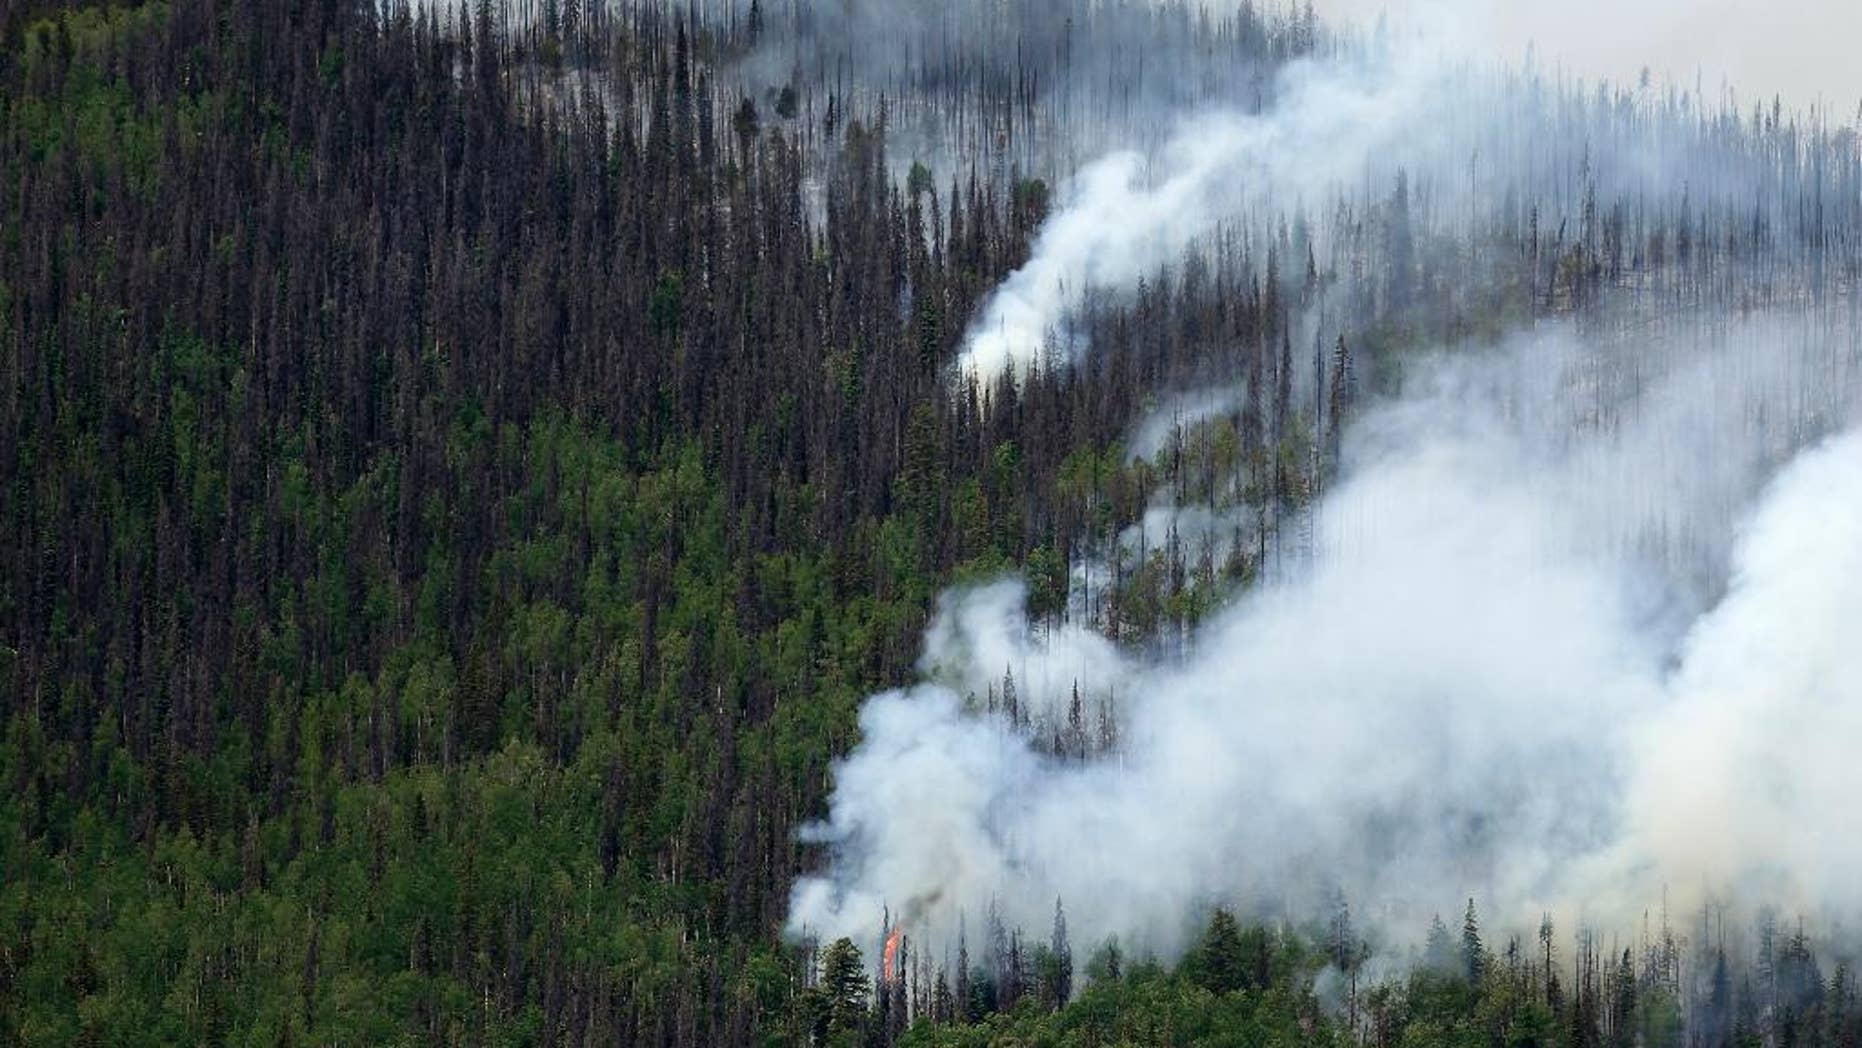 FILE - In this June 24, 2013 file photo, fire-promoting beetle-killed trees mix with live trees as a wildfire burns west of Creede, Colo.